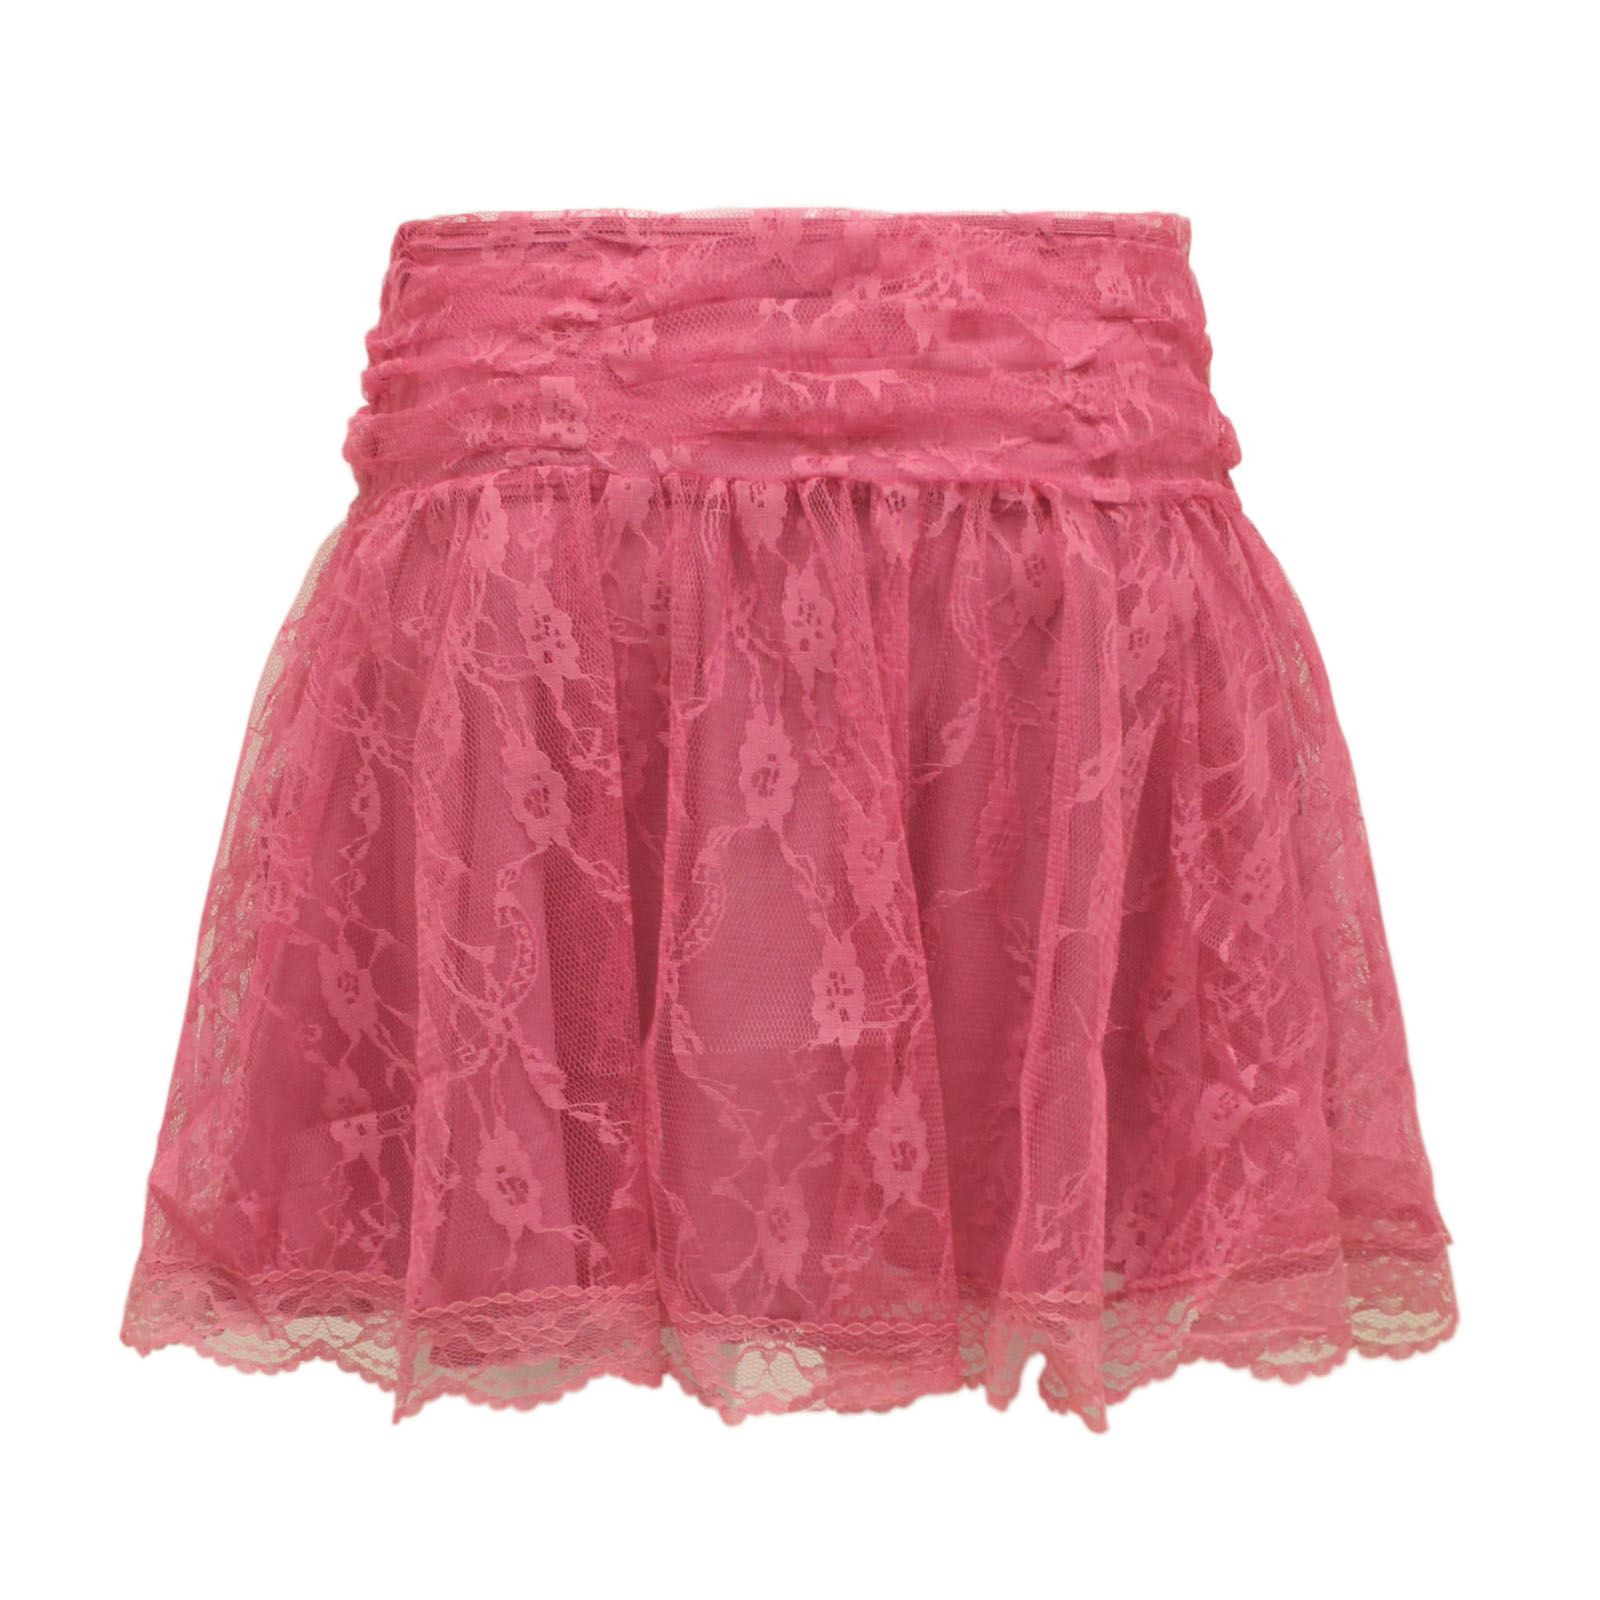 new womens lace mesh crochet tiered mini skirt